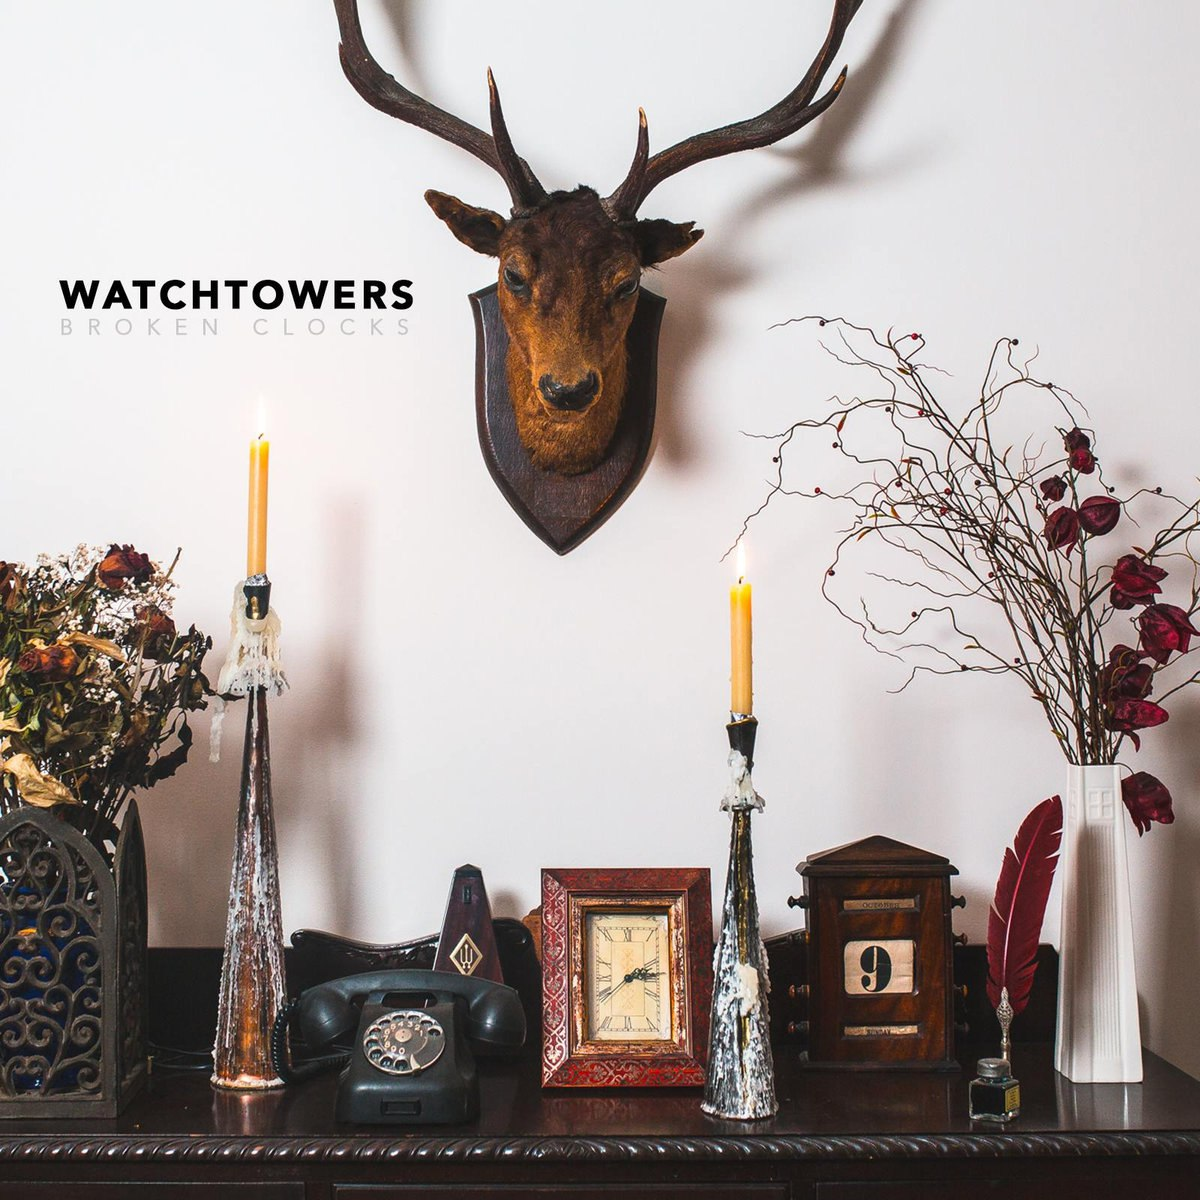 Watchtowers - Broken Clocks [single] (2016)